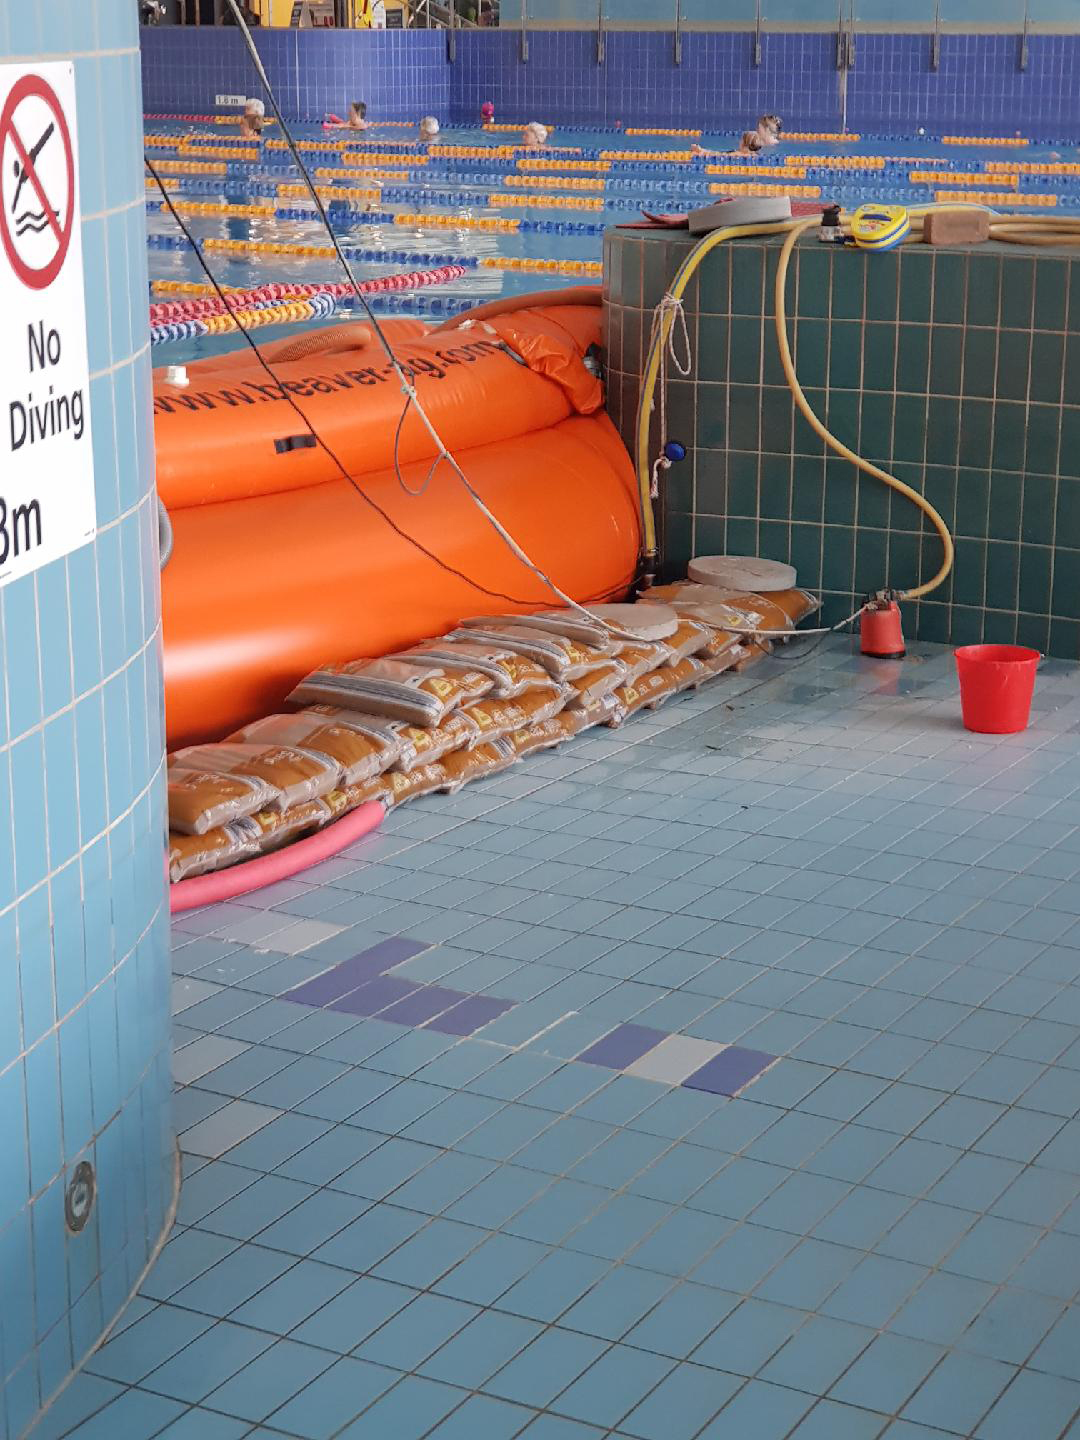 Public Pool Stays Open During Repairs Using A Water Dam